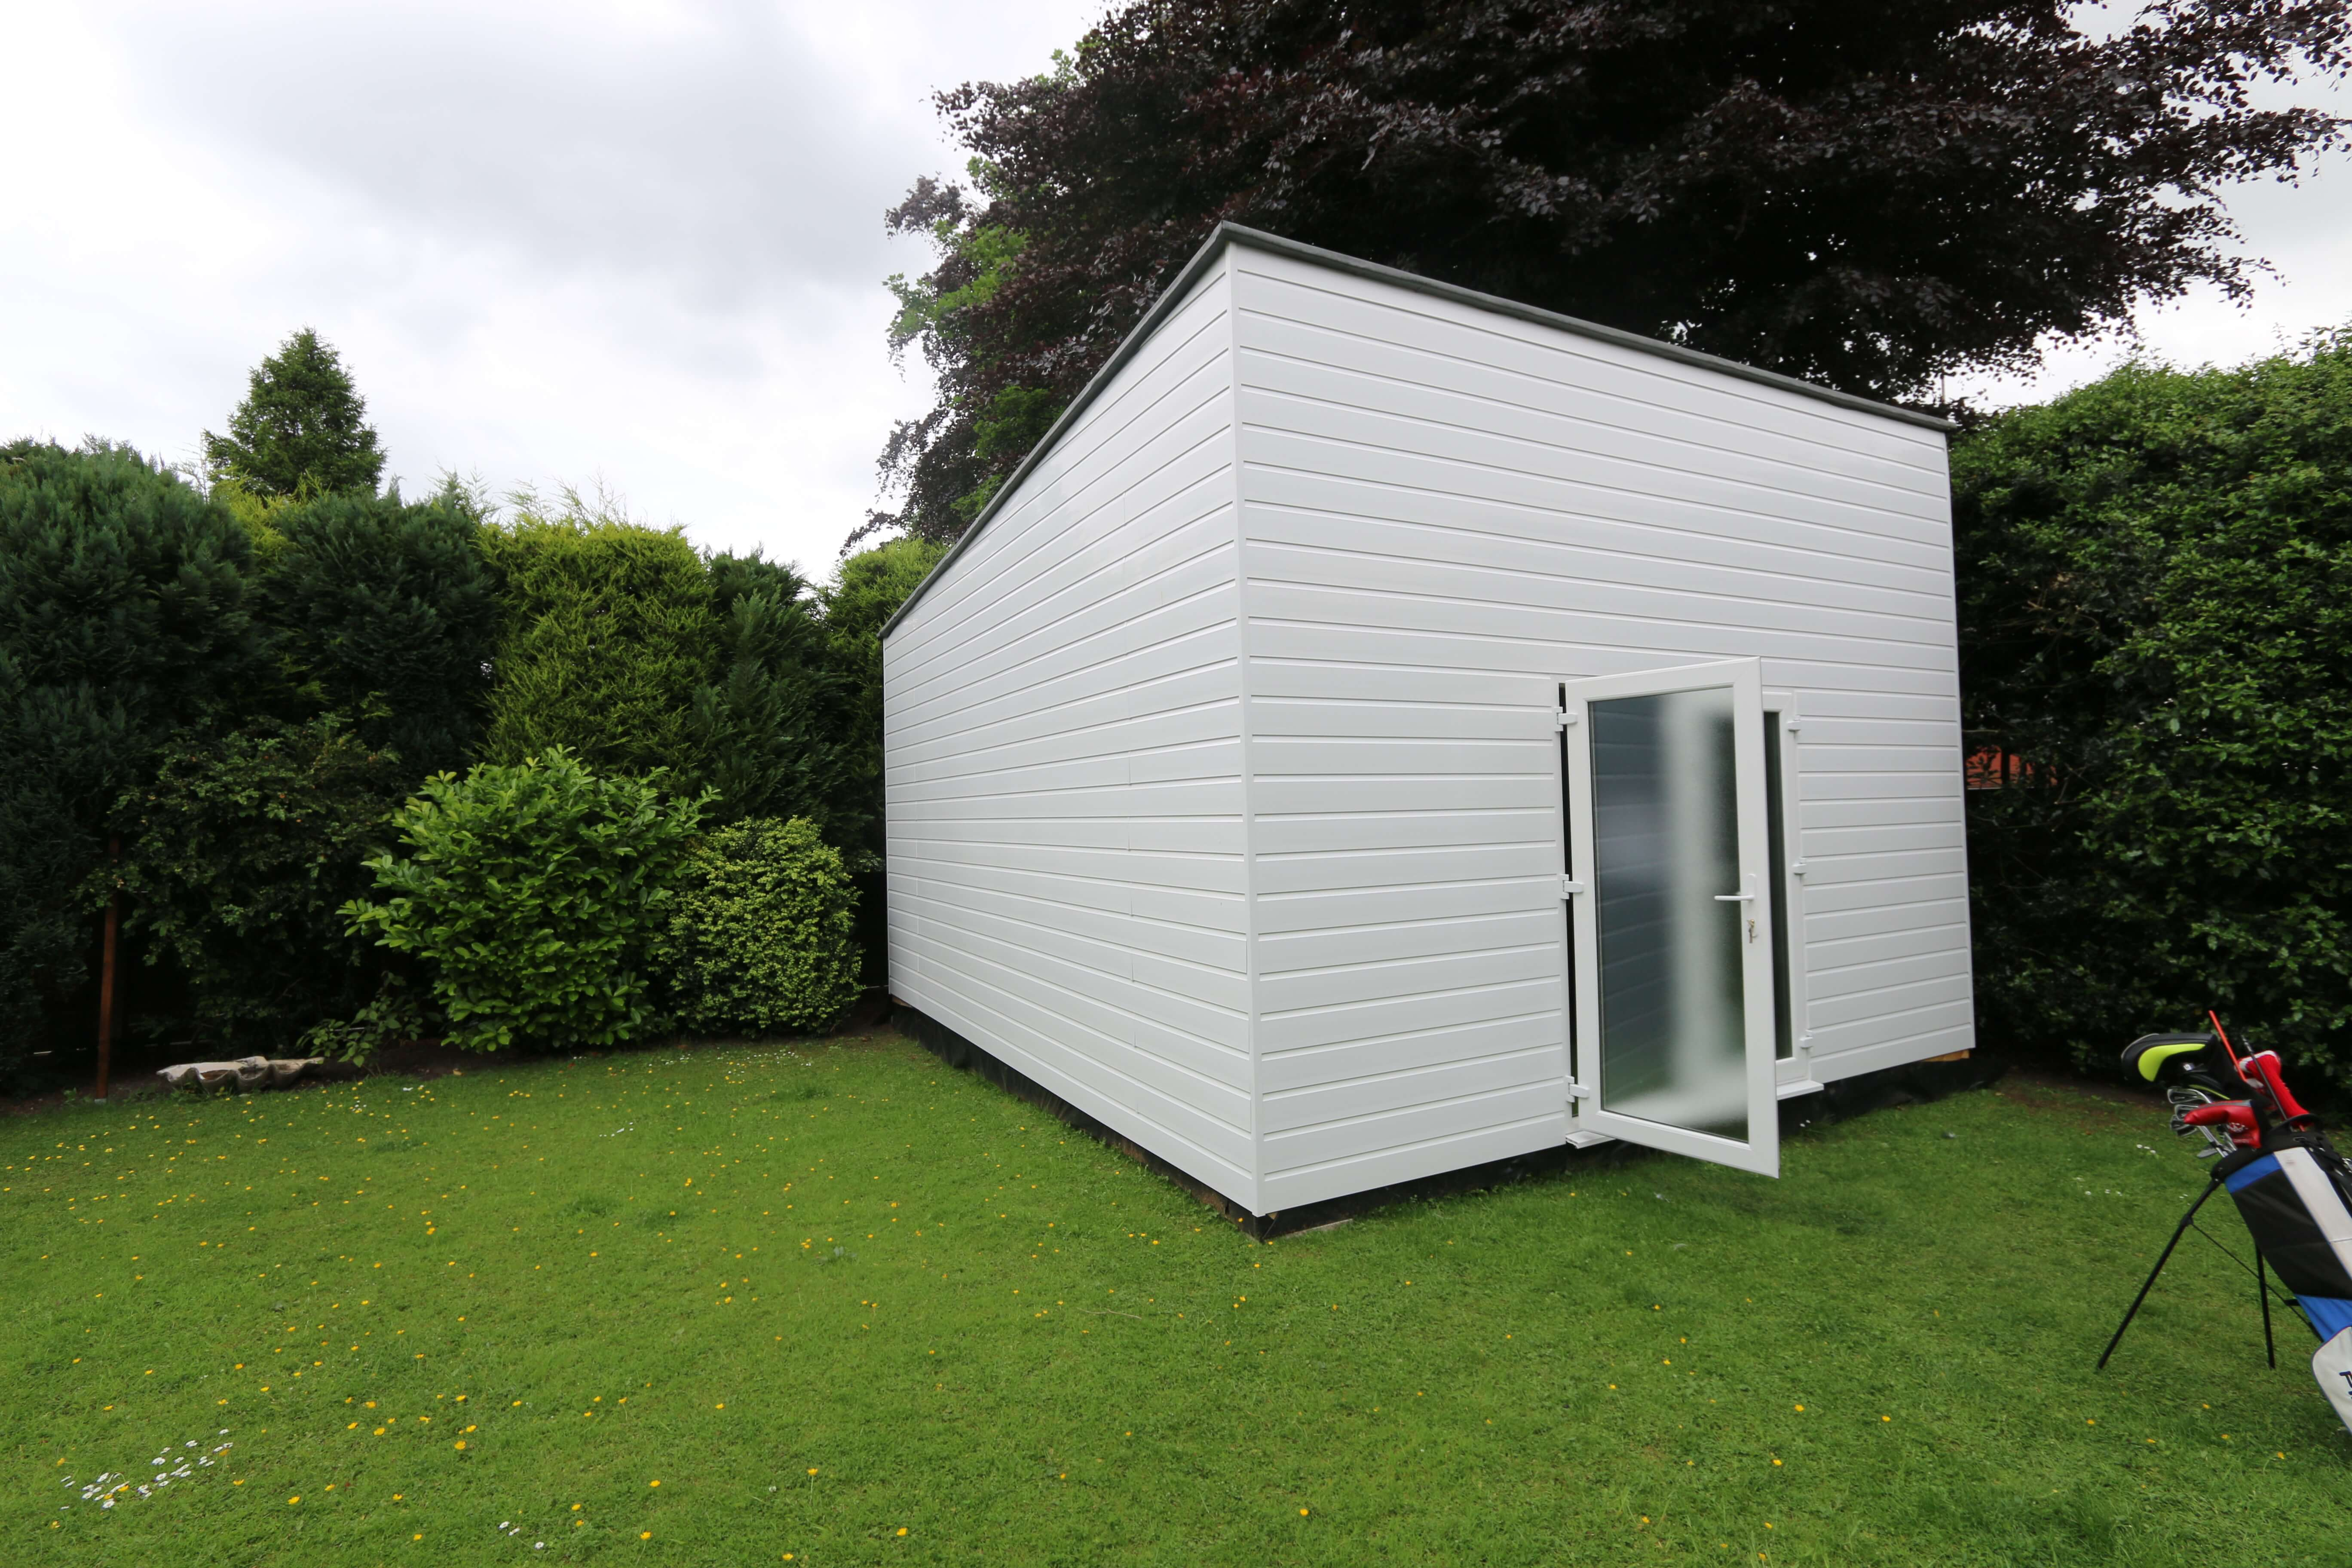 Golf Simulator Cabin In The Back Garden Golf Academy Case Studies